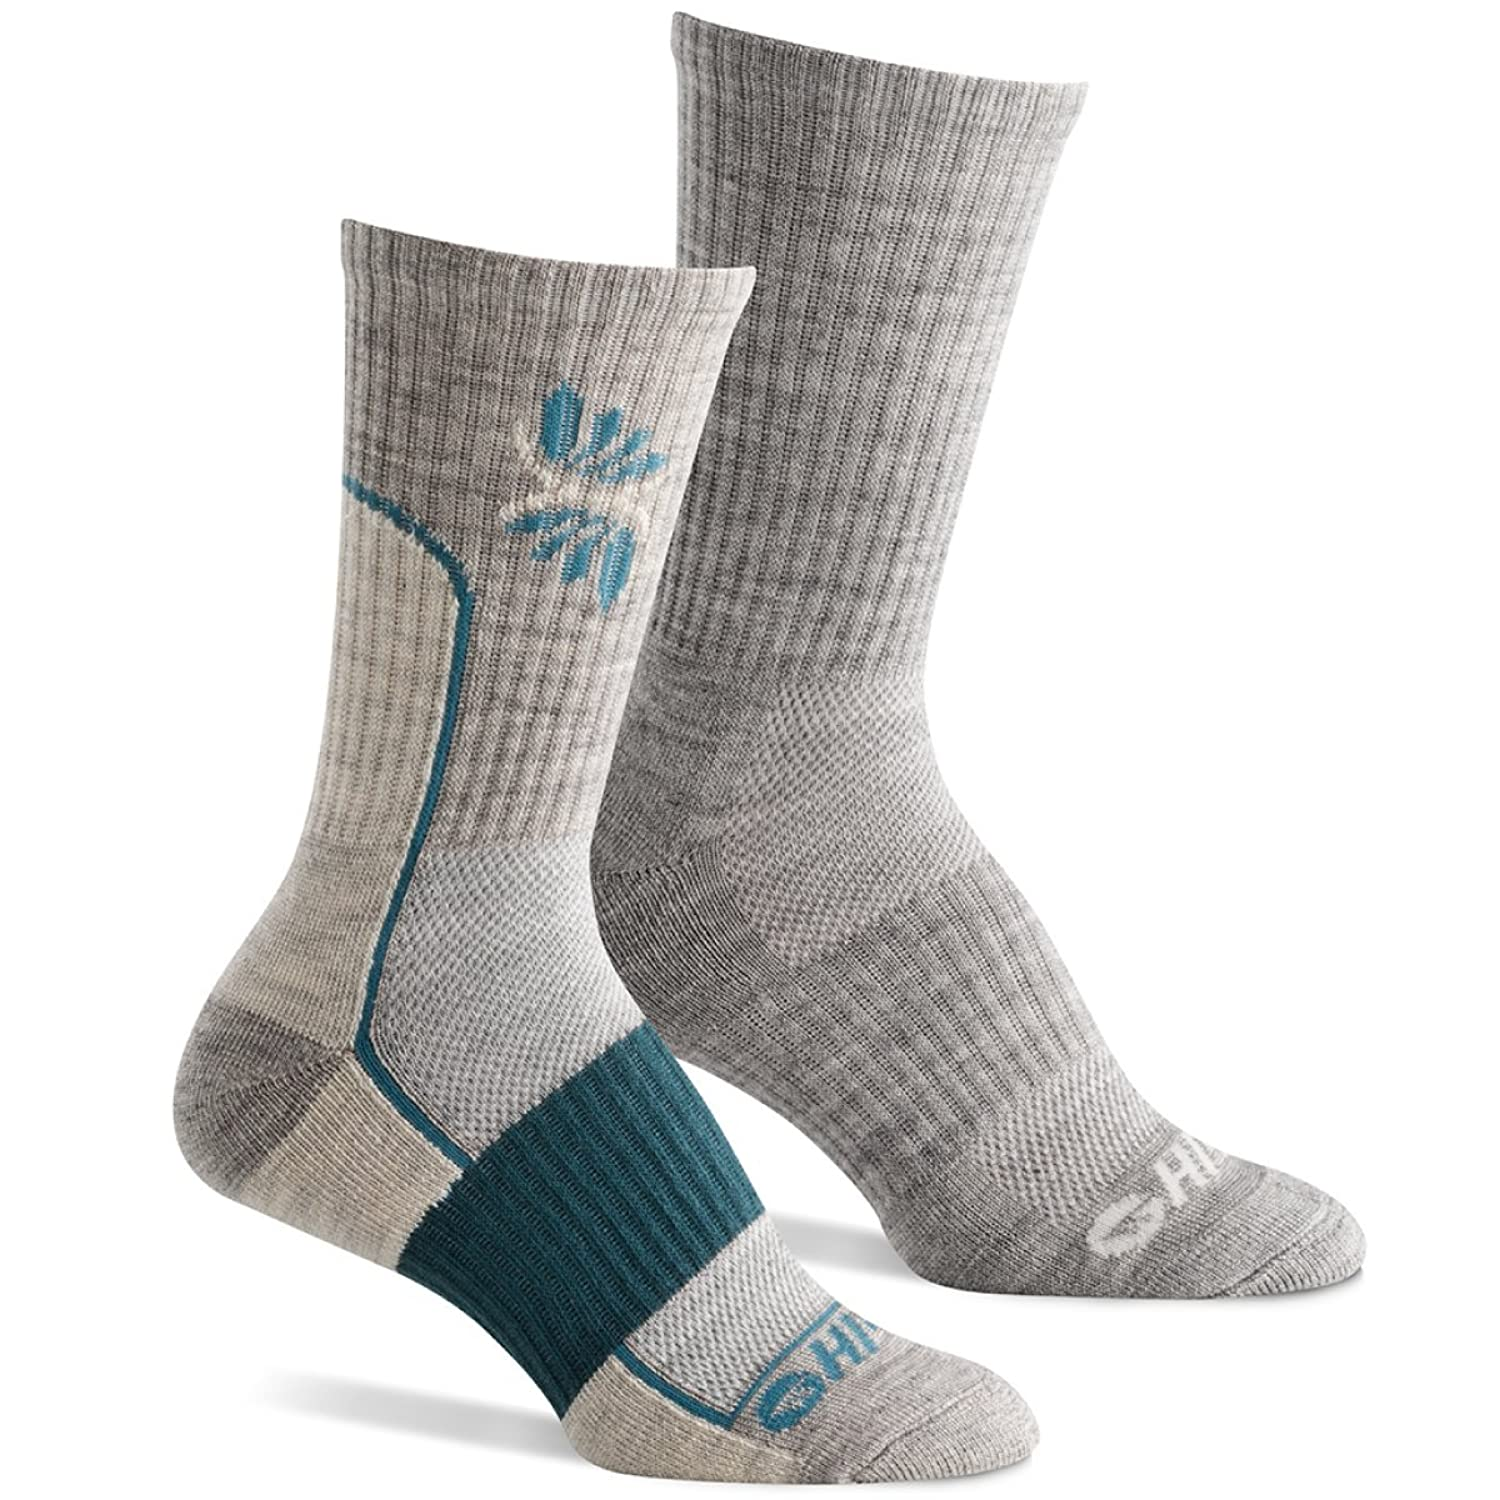 Hi-Tec Women鈥檚 Performance Hiking Socks for Outdoors, Casual Use (Pack of 2 Pairs) 鈥